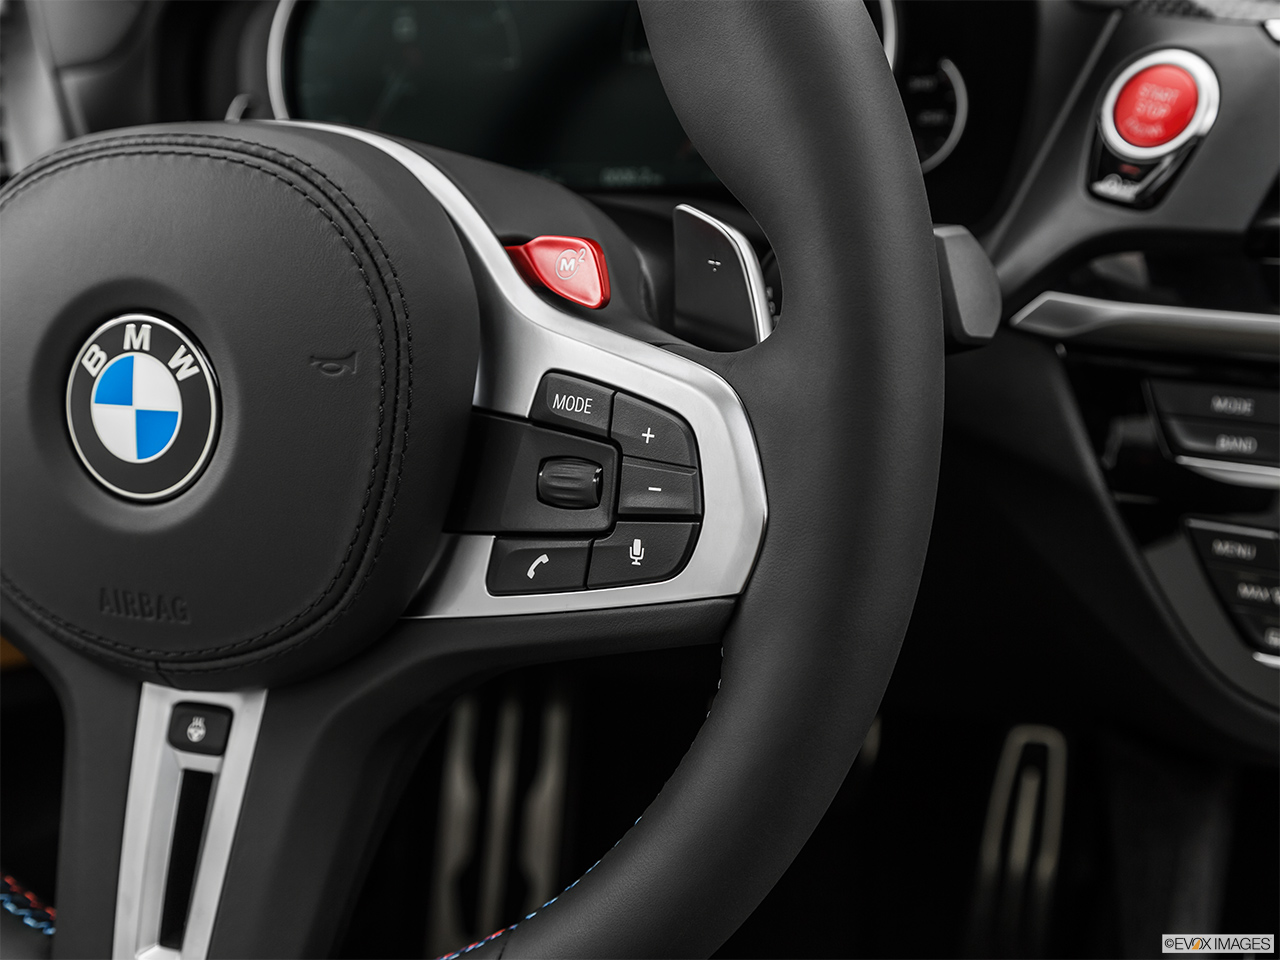 2020 BMW X3 M Competition Steering Wheel Controls (Right Side)